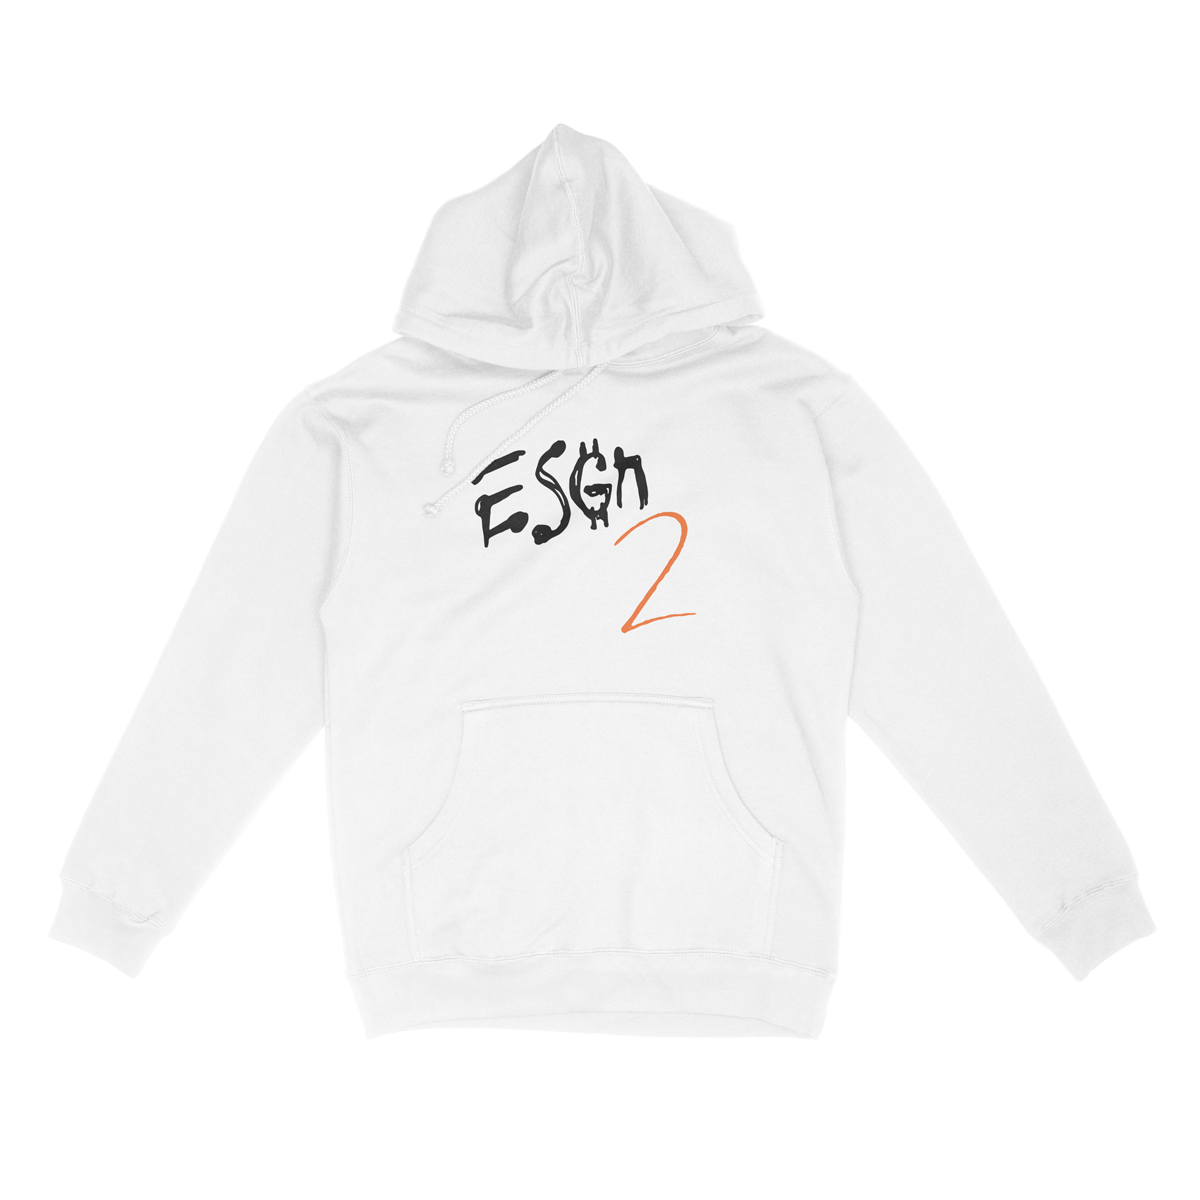 ESGN2 Hoodie - White